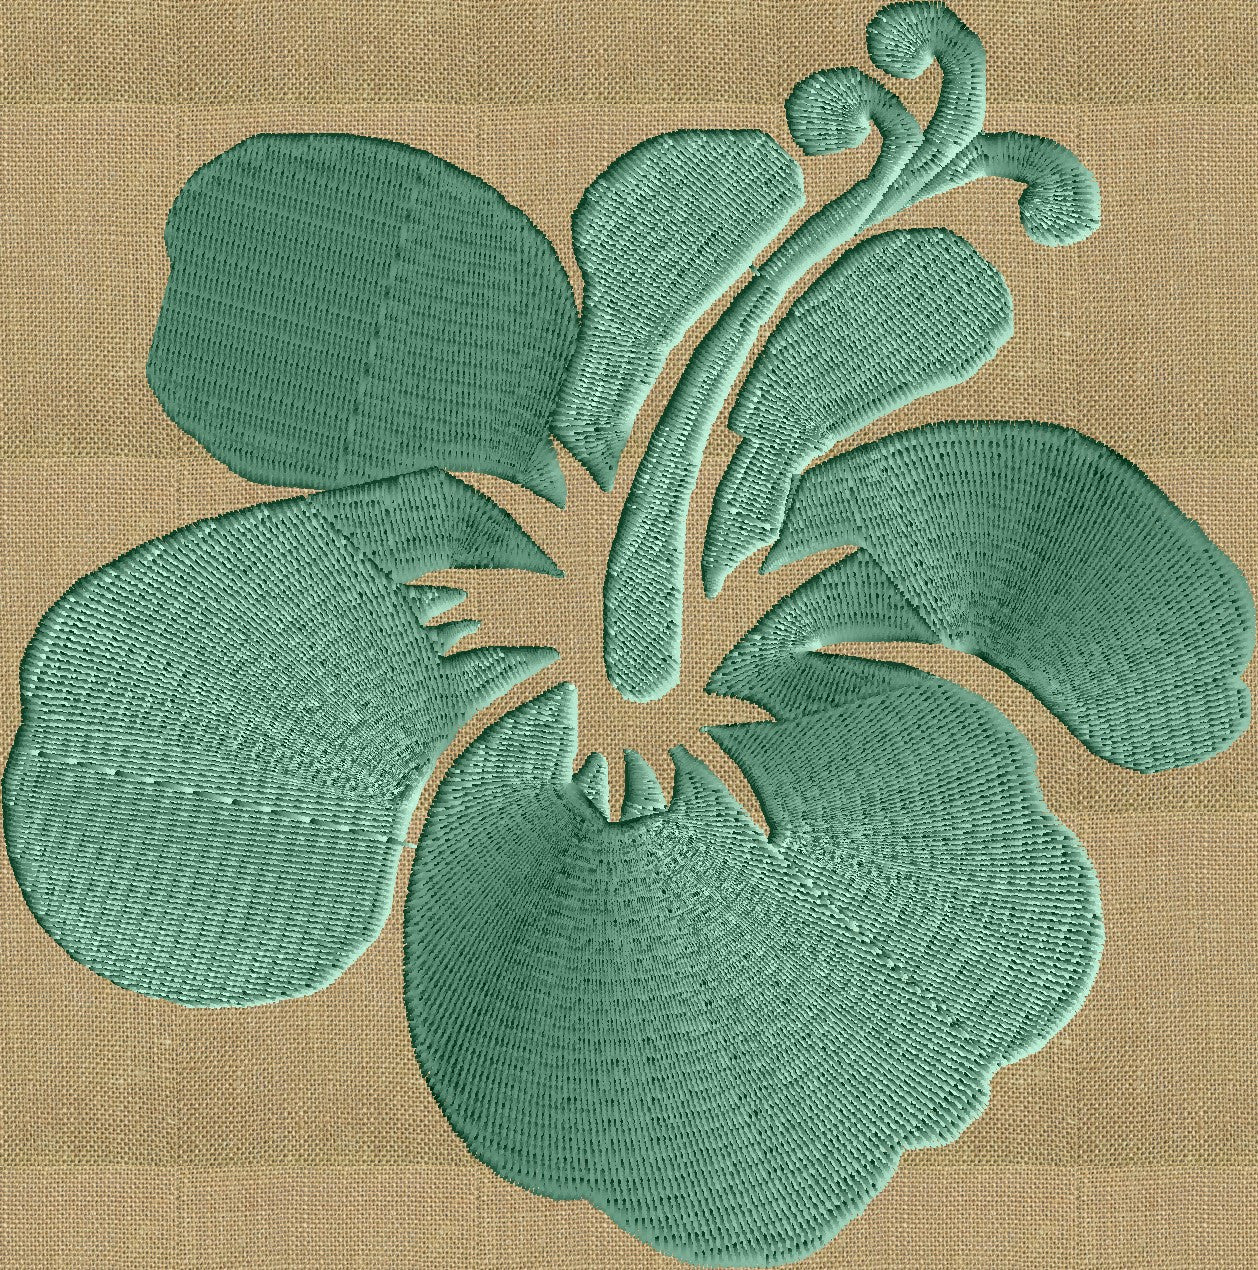 Hawaiian Flower - EMBROIDERY Design FILE - Instant download